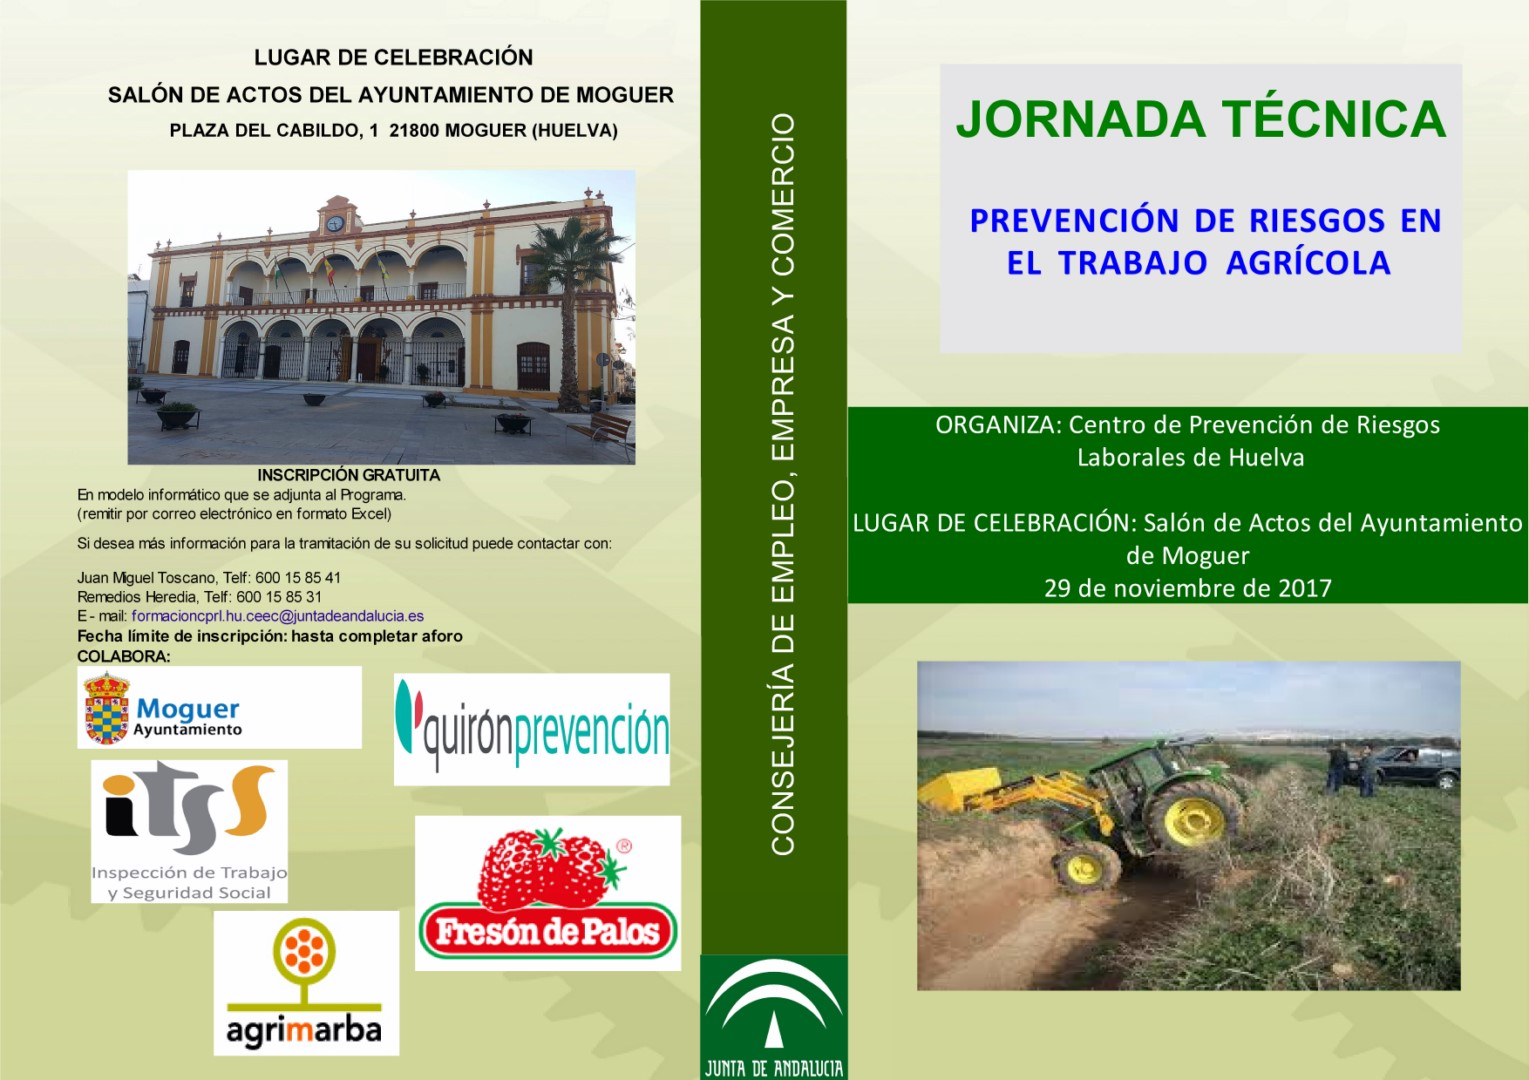 J.T. AGRICULTURA. 29-11-2017